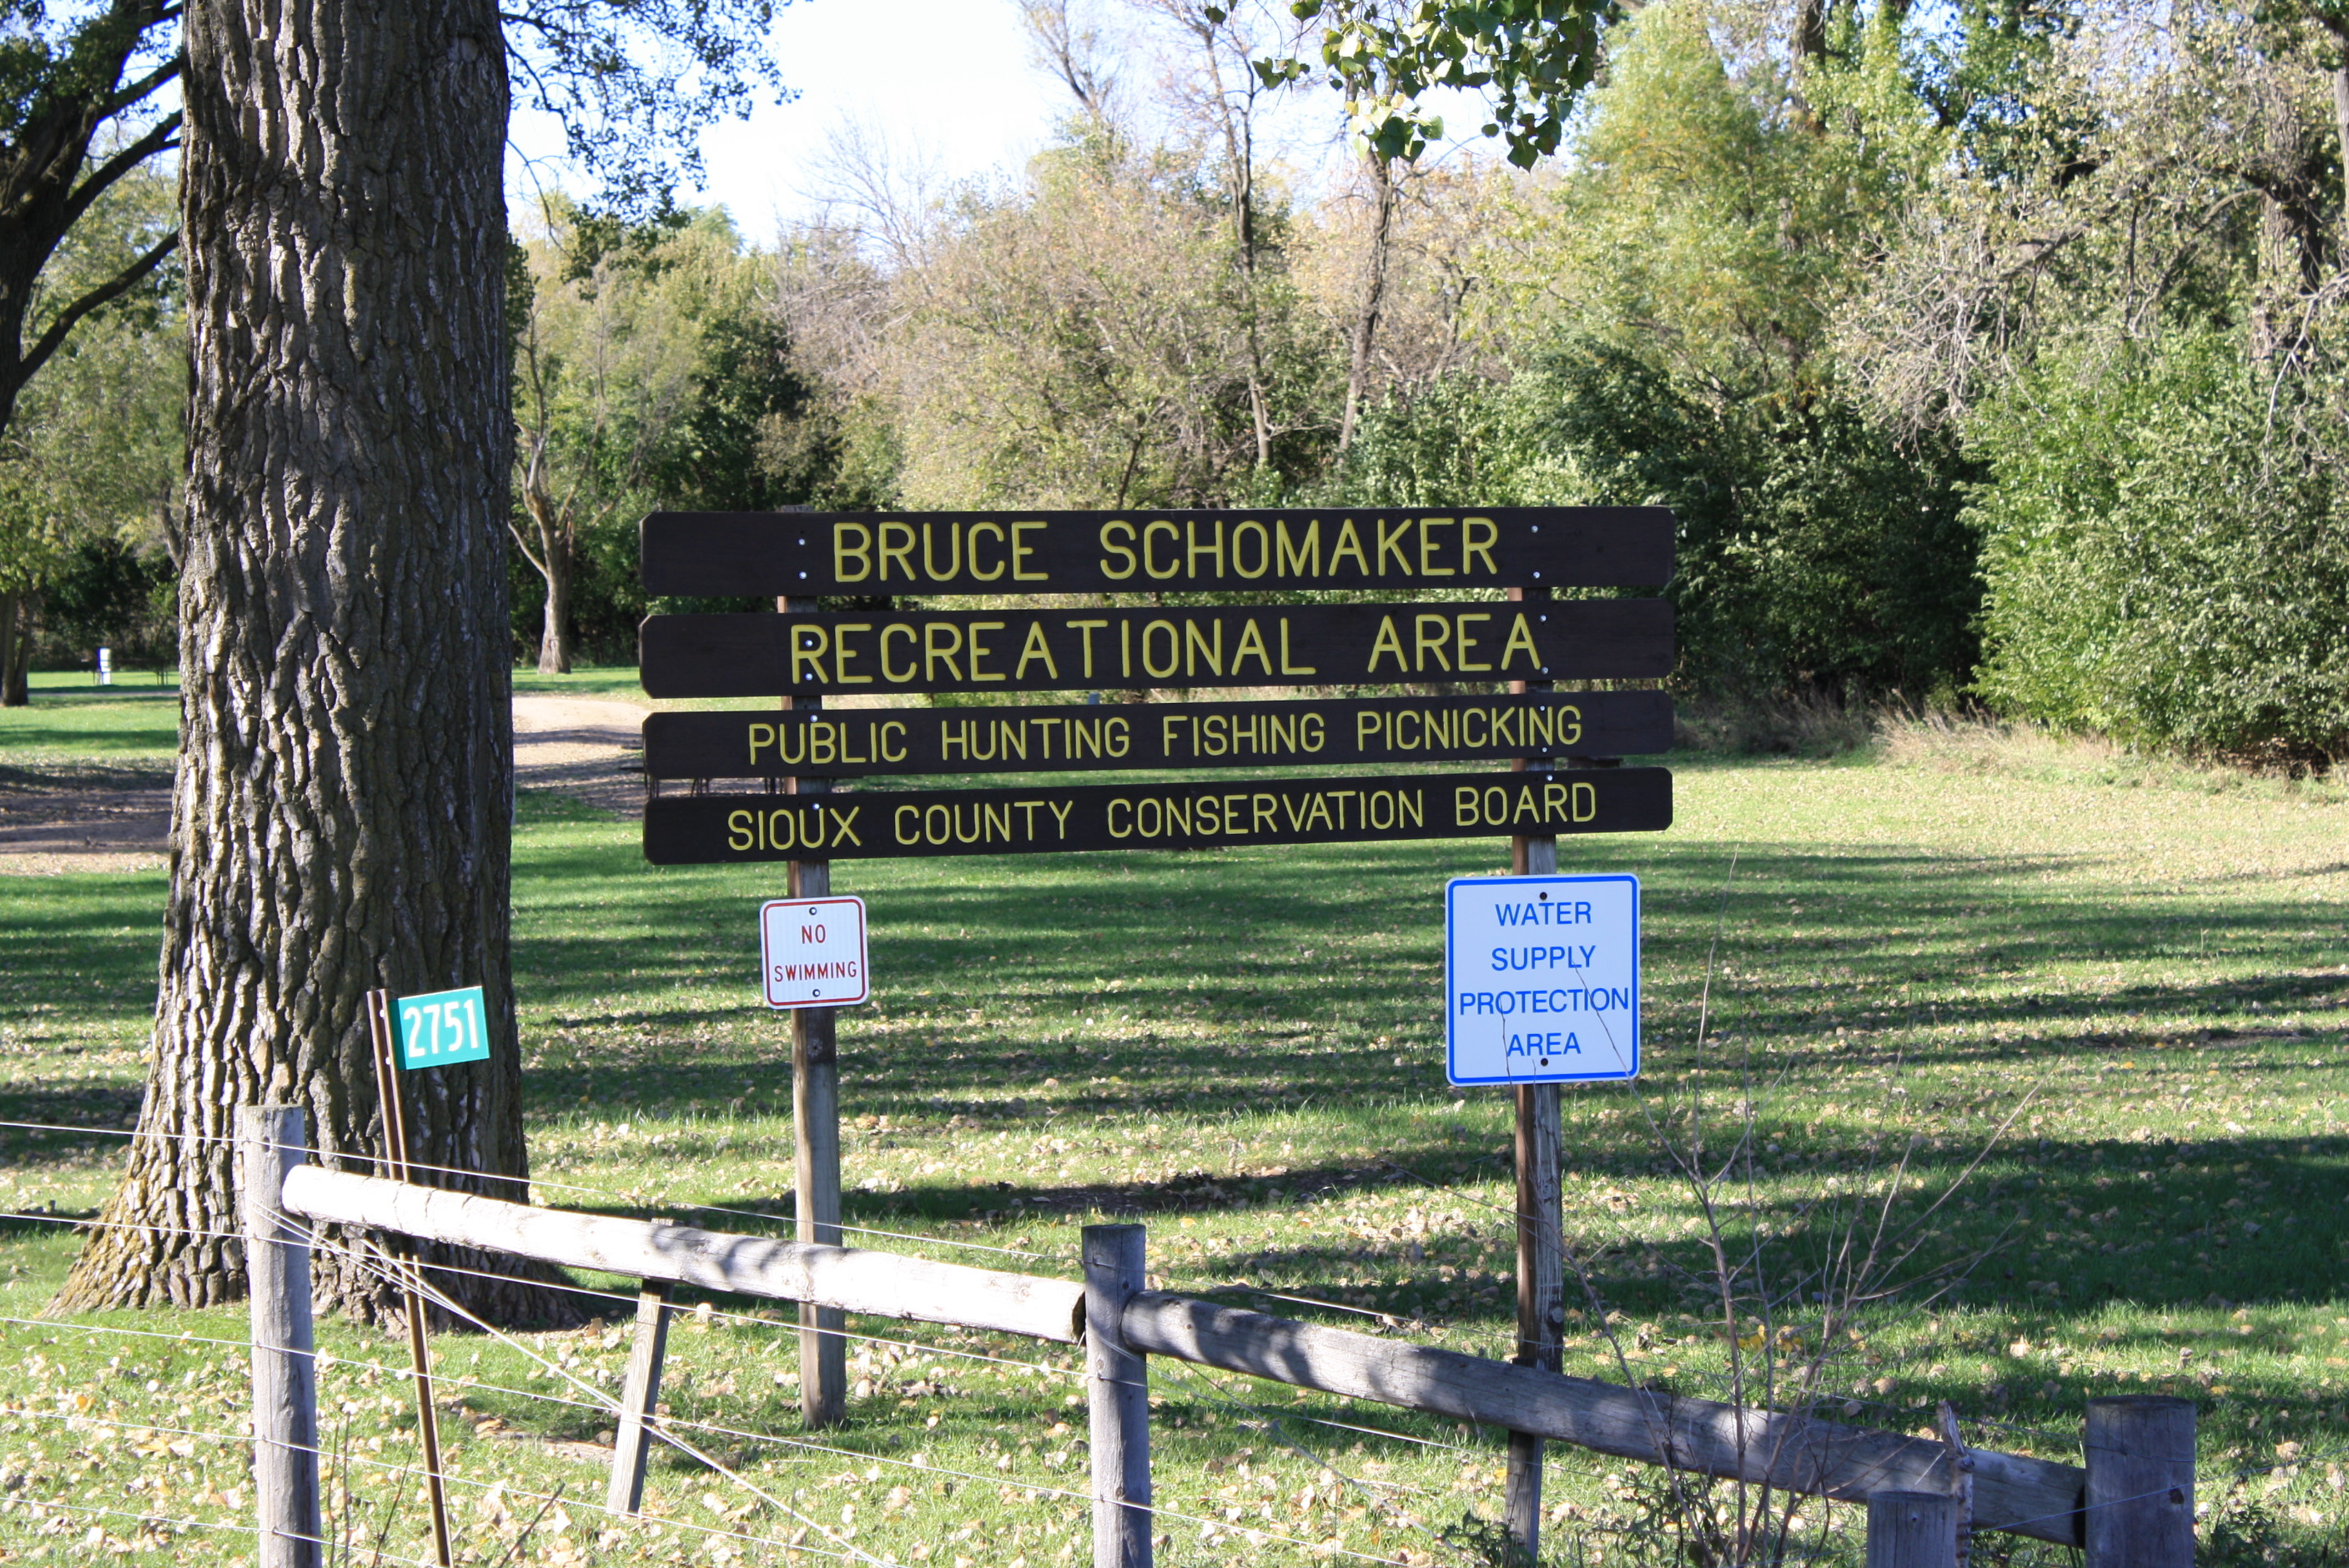 Bruce Schomaker Recreation Area